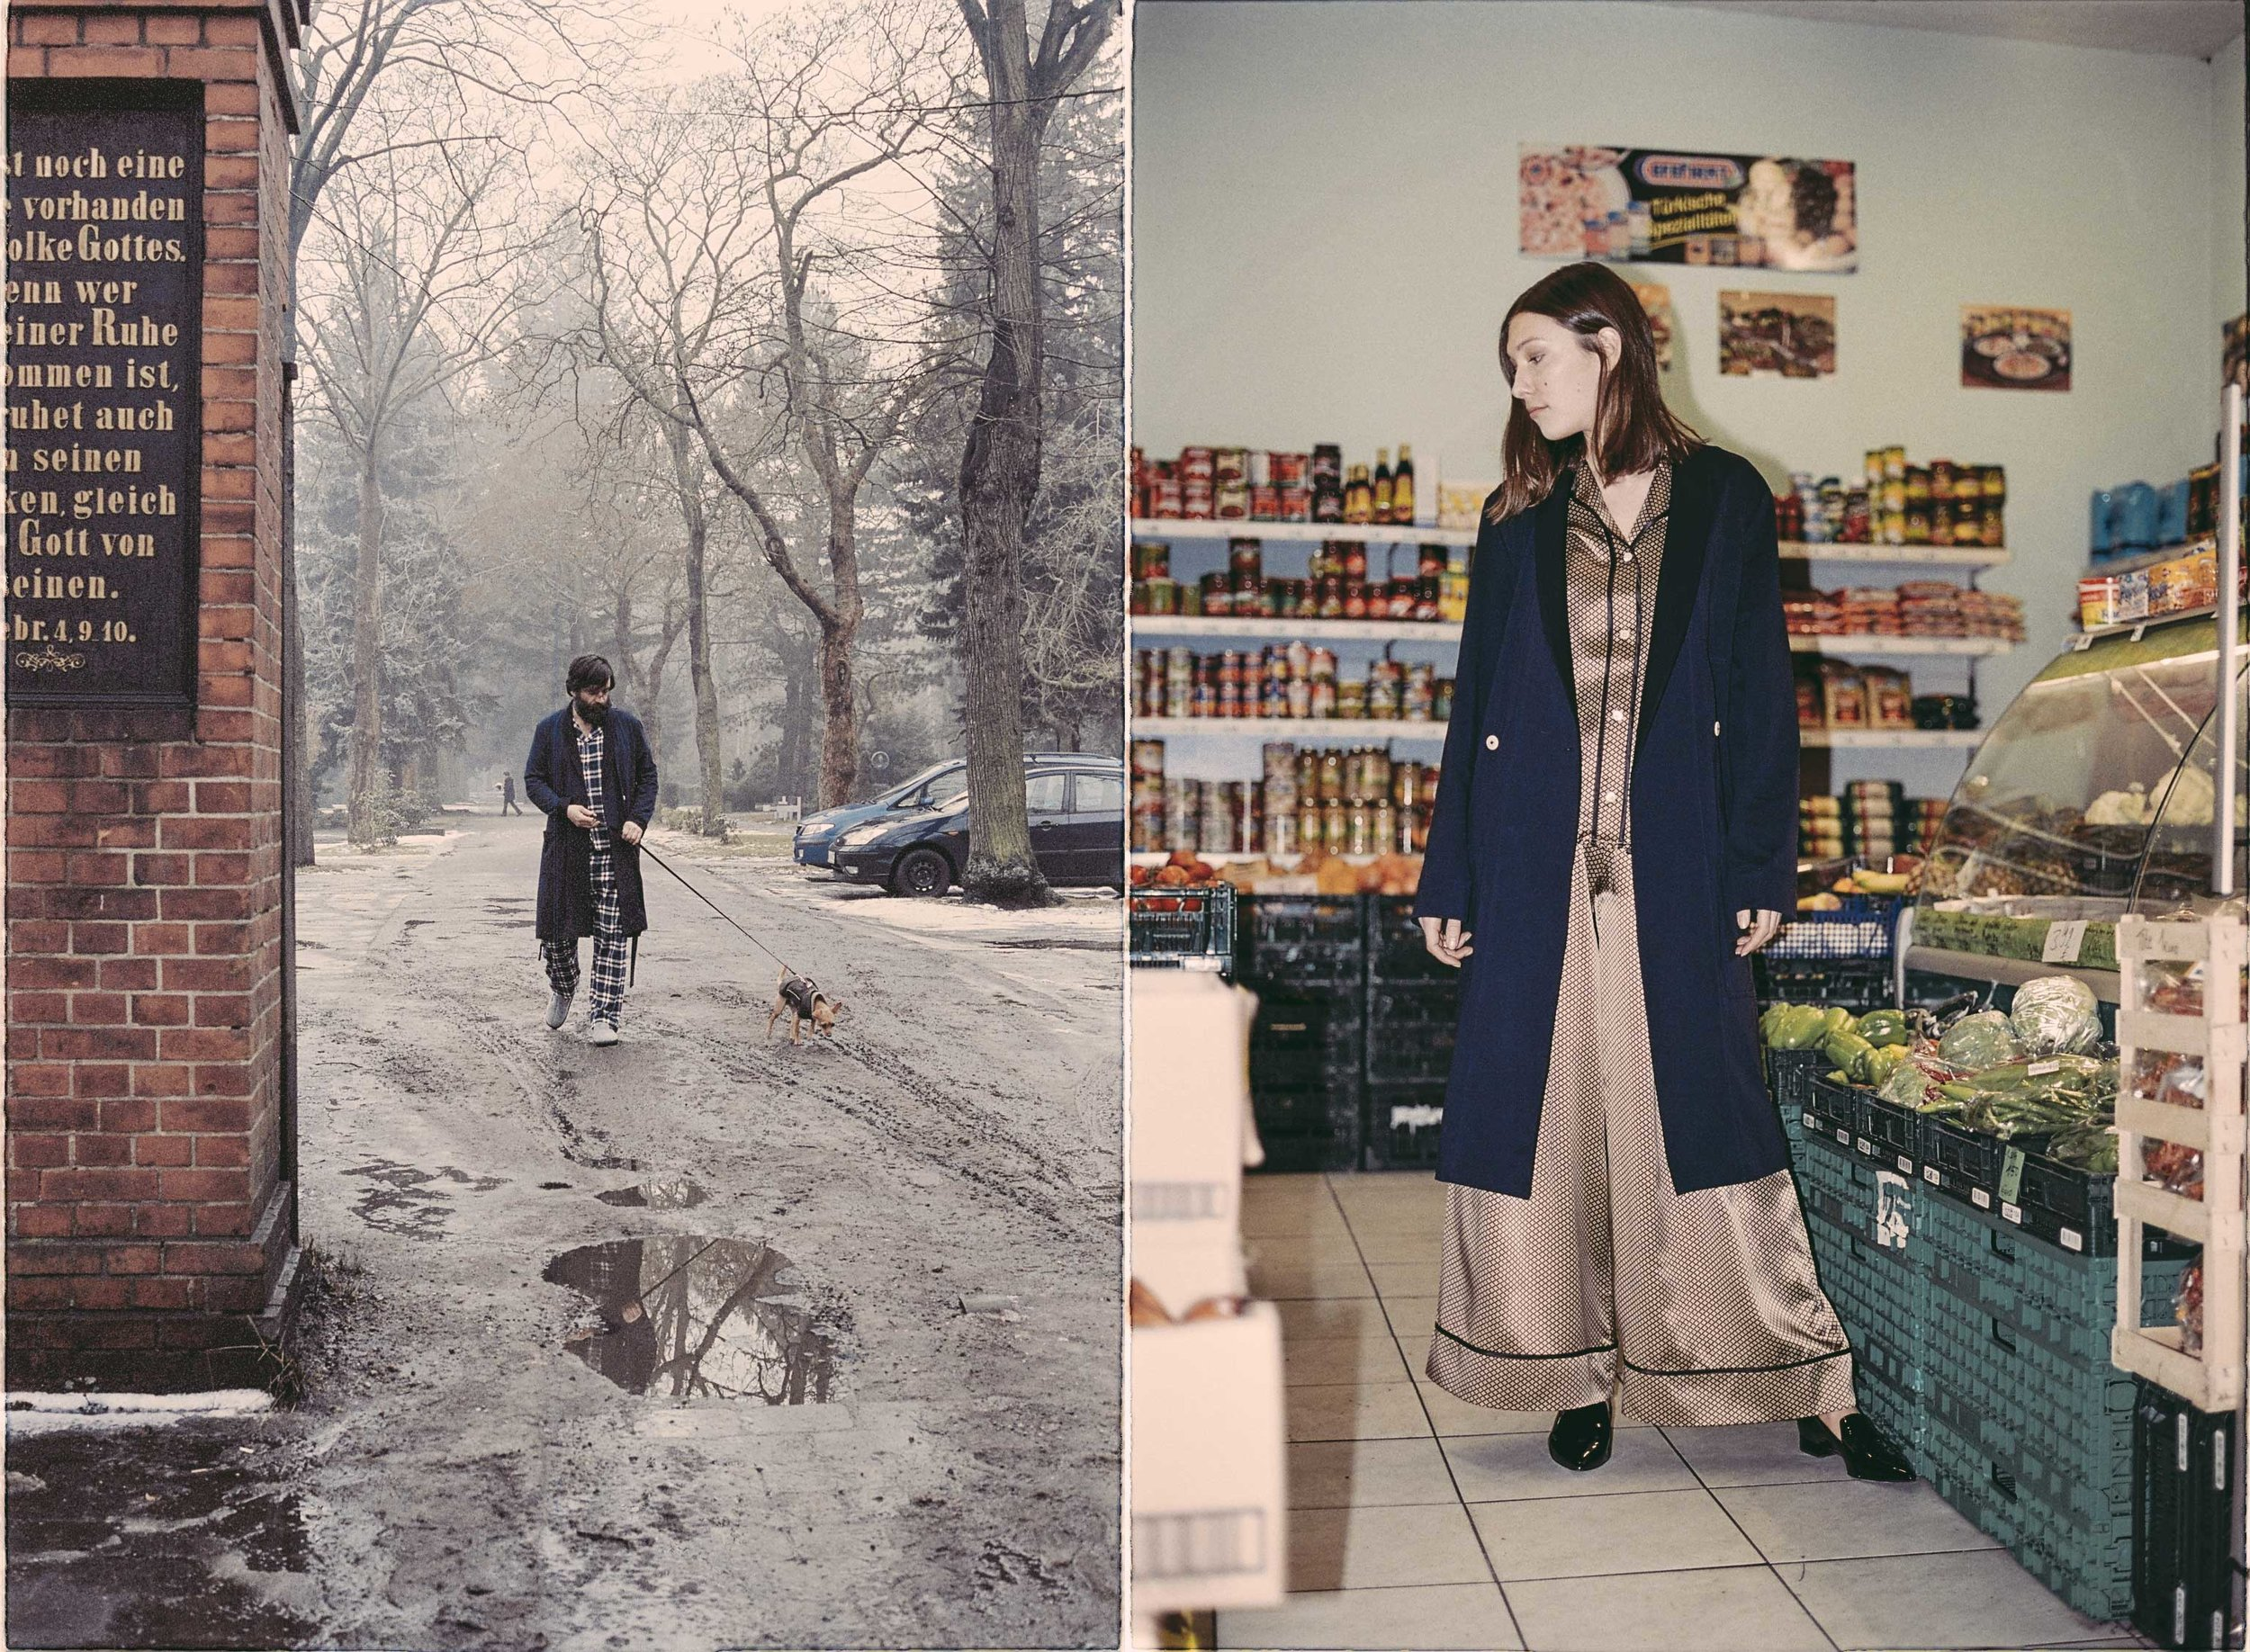 Pictures by Stefan Dotter